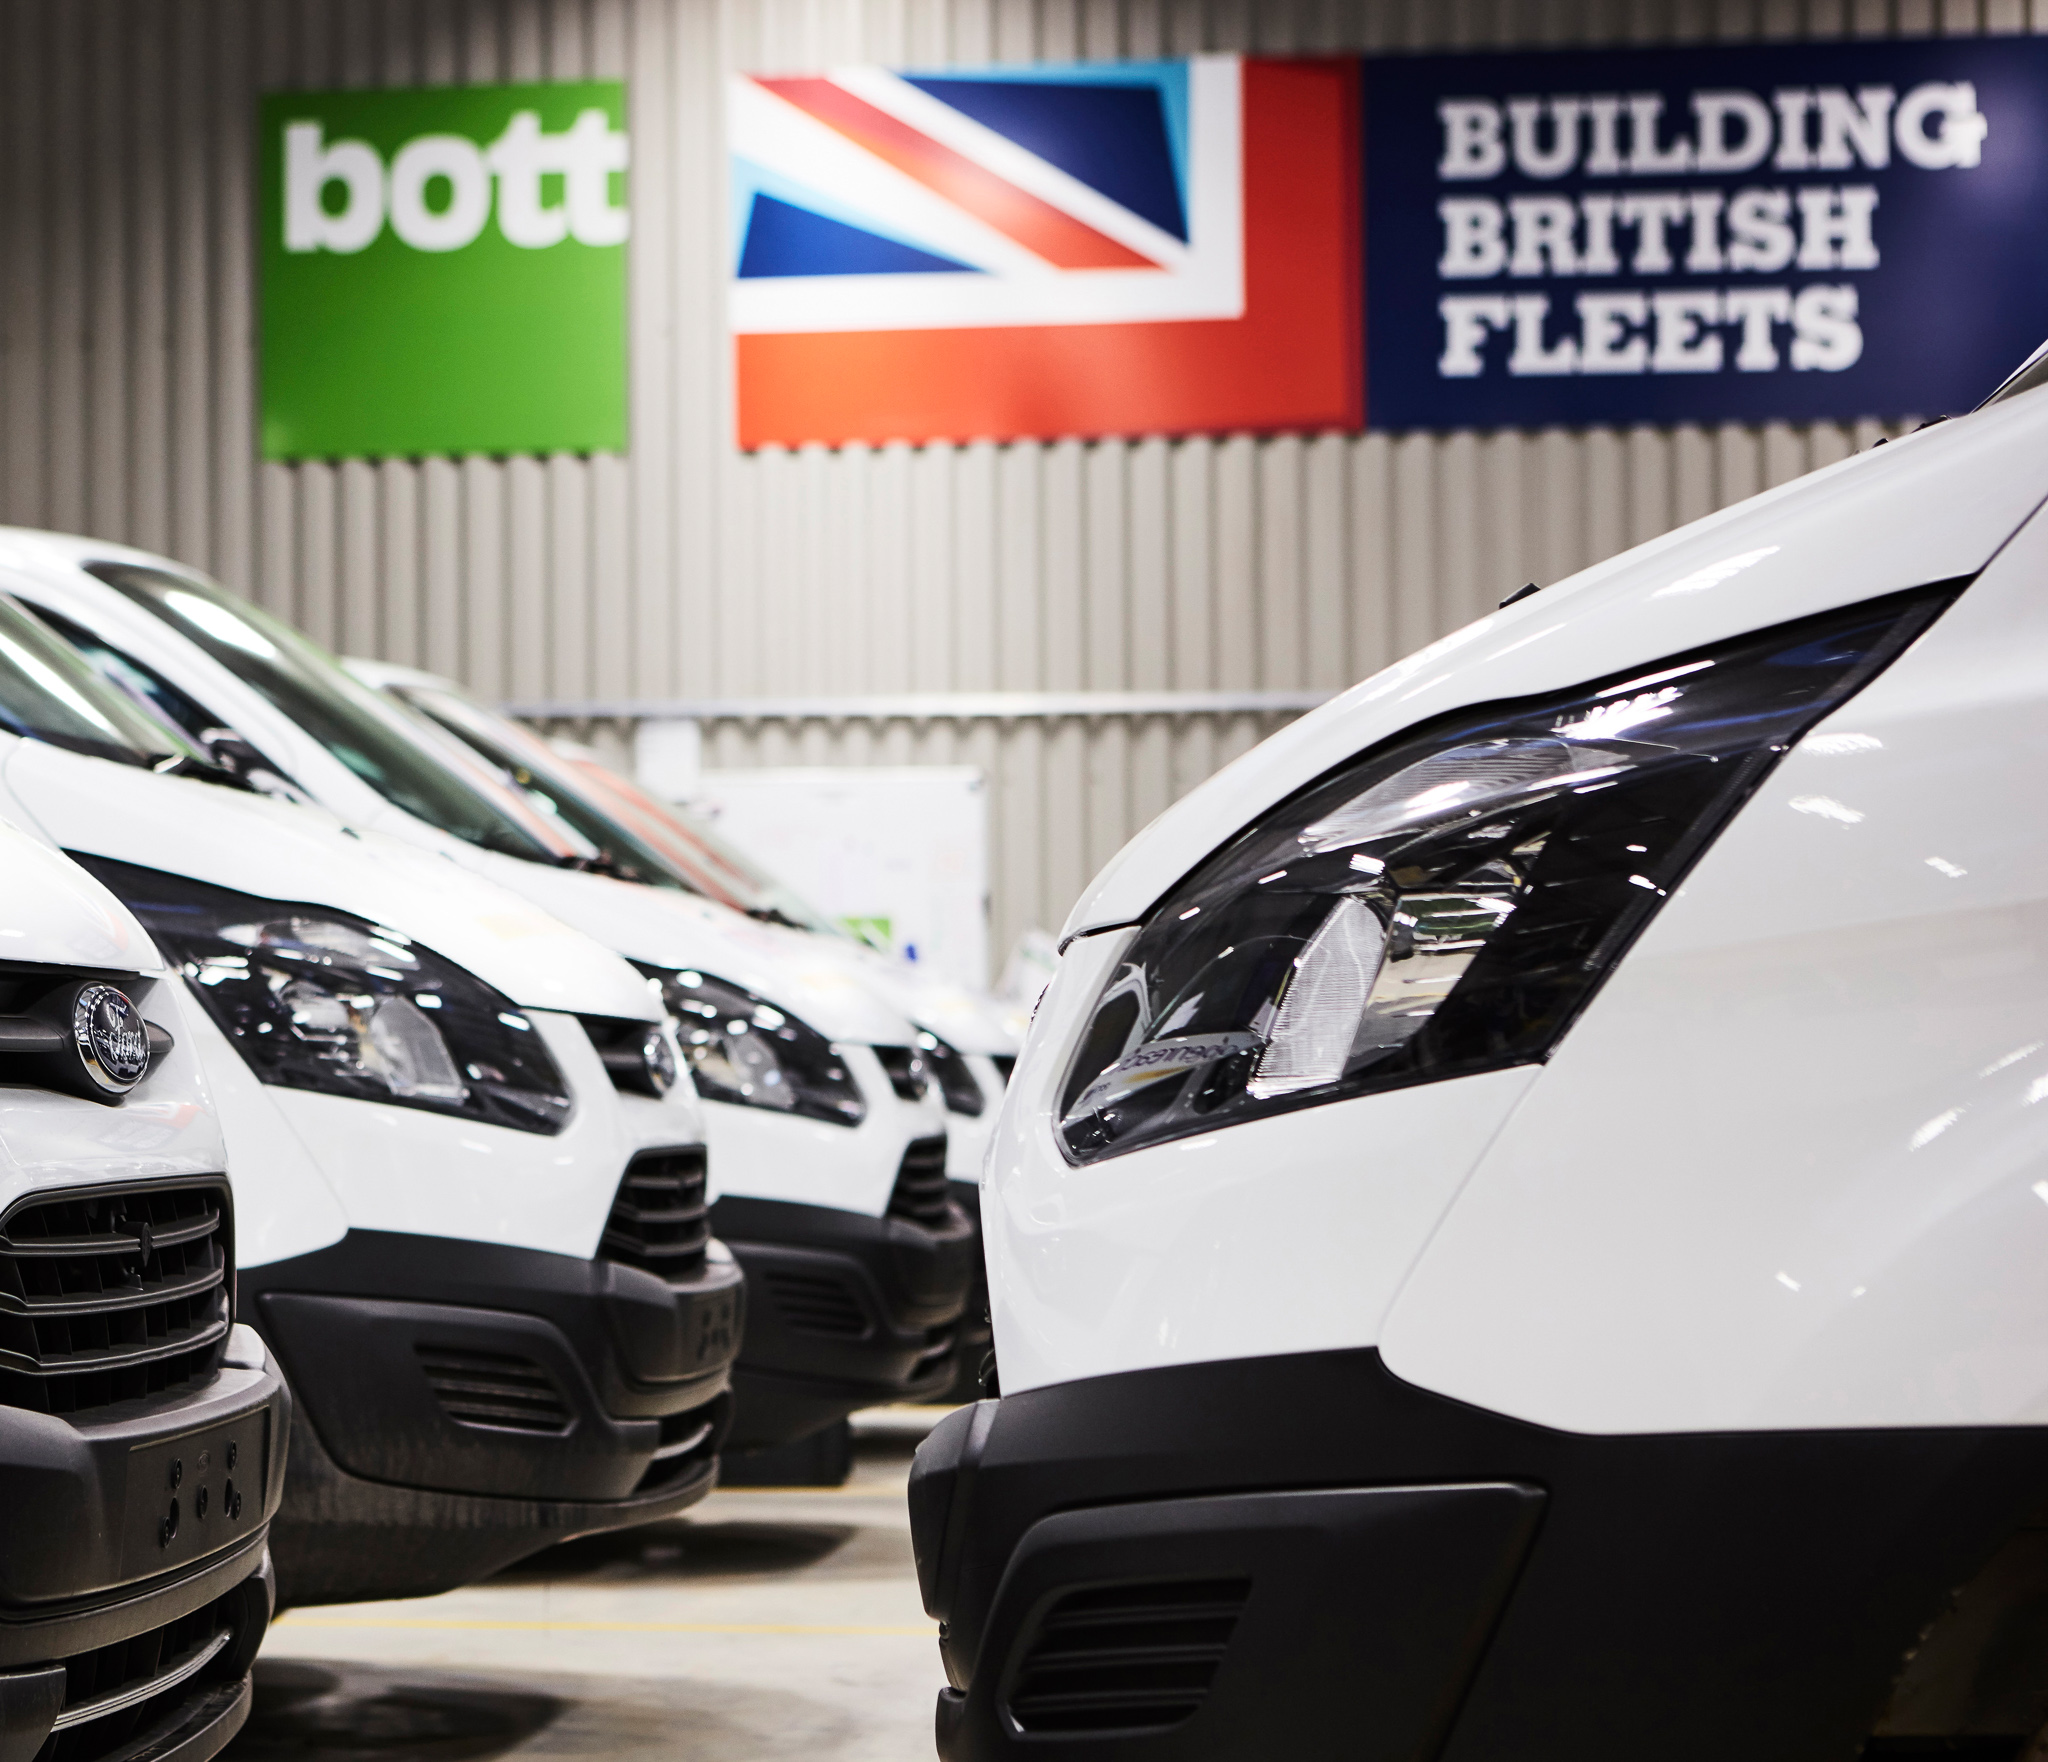 Bott Van Workshop